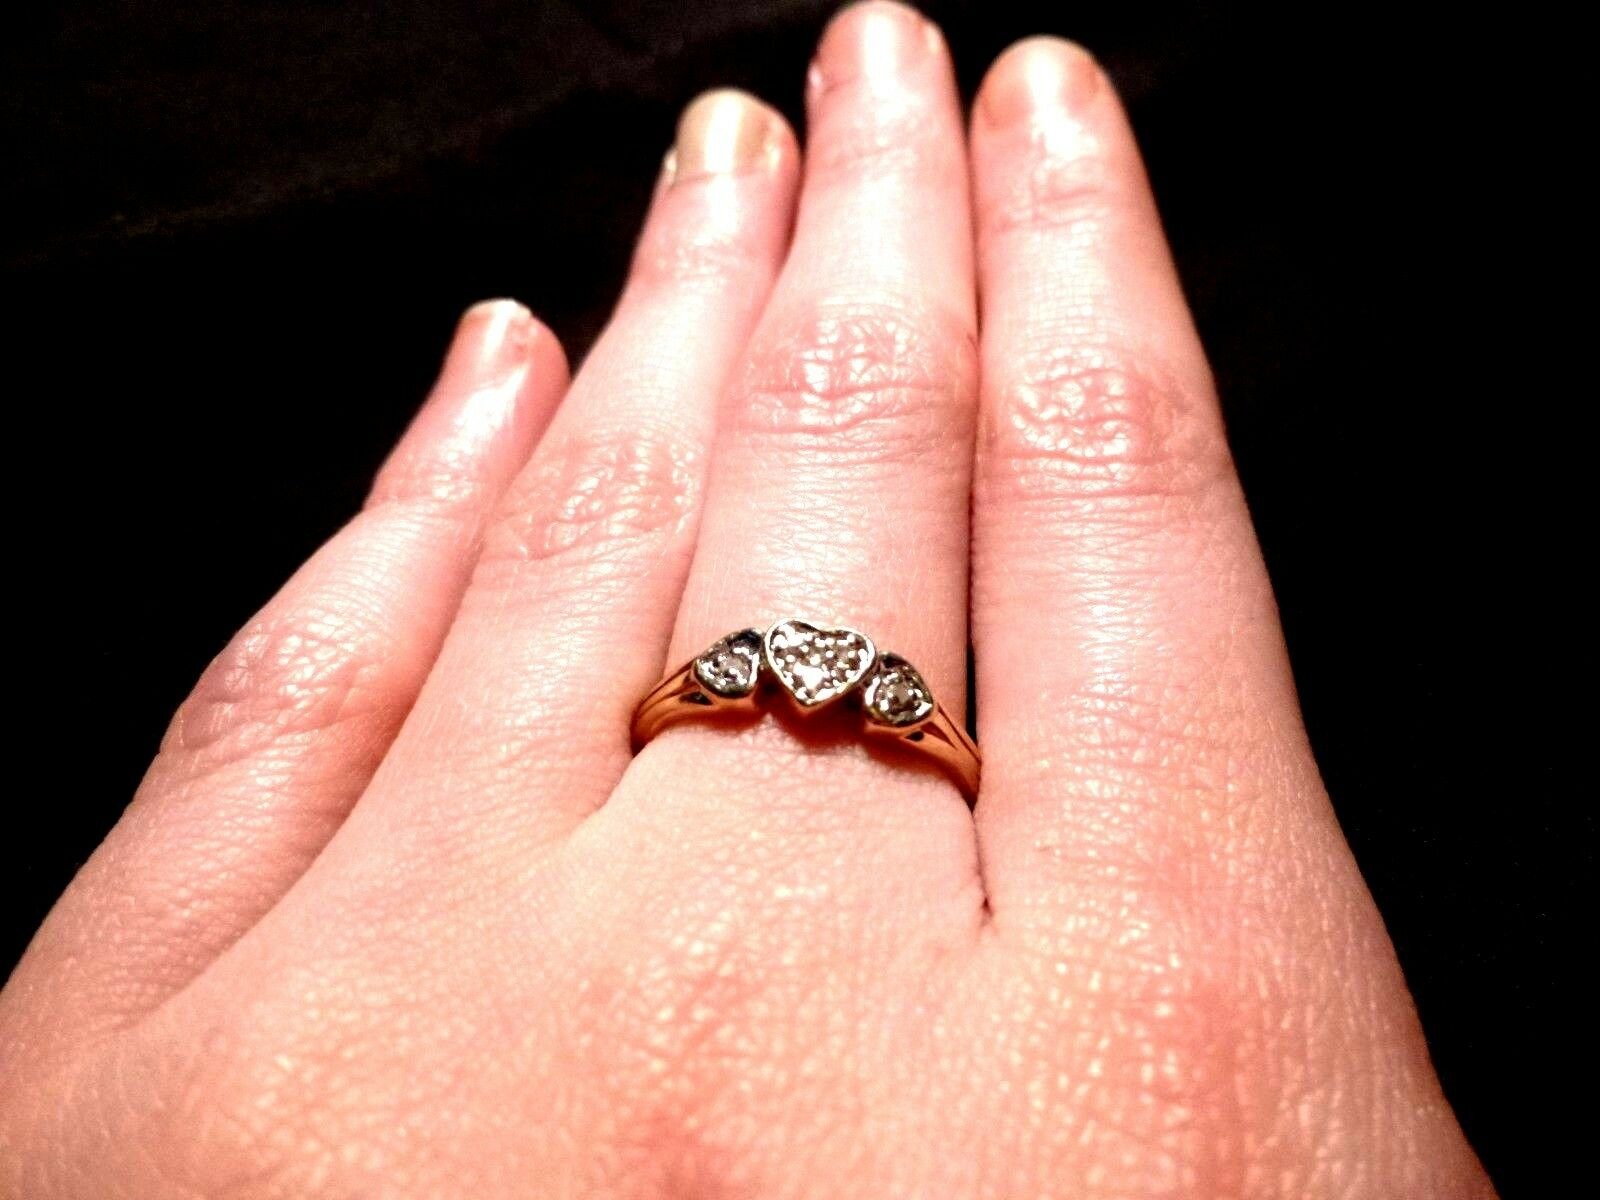 10K gold 3 HEART RING WITH 5 DIAMONDS SIZE 7 WHITE AND YELLOW gold